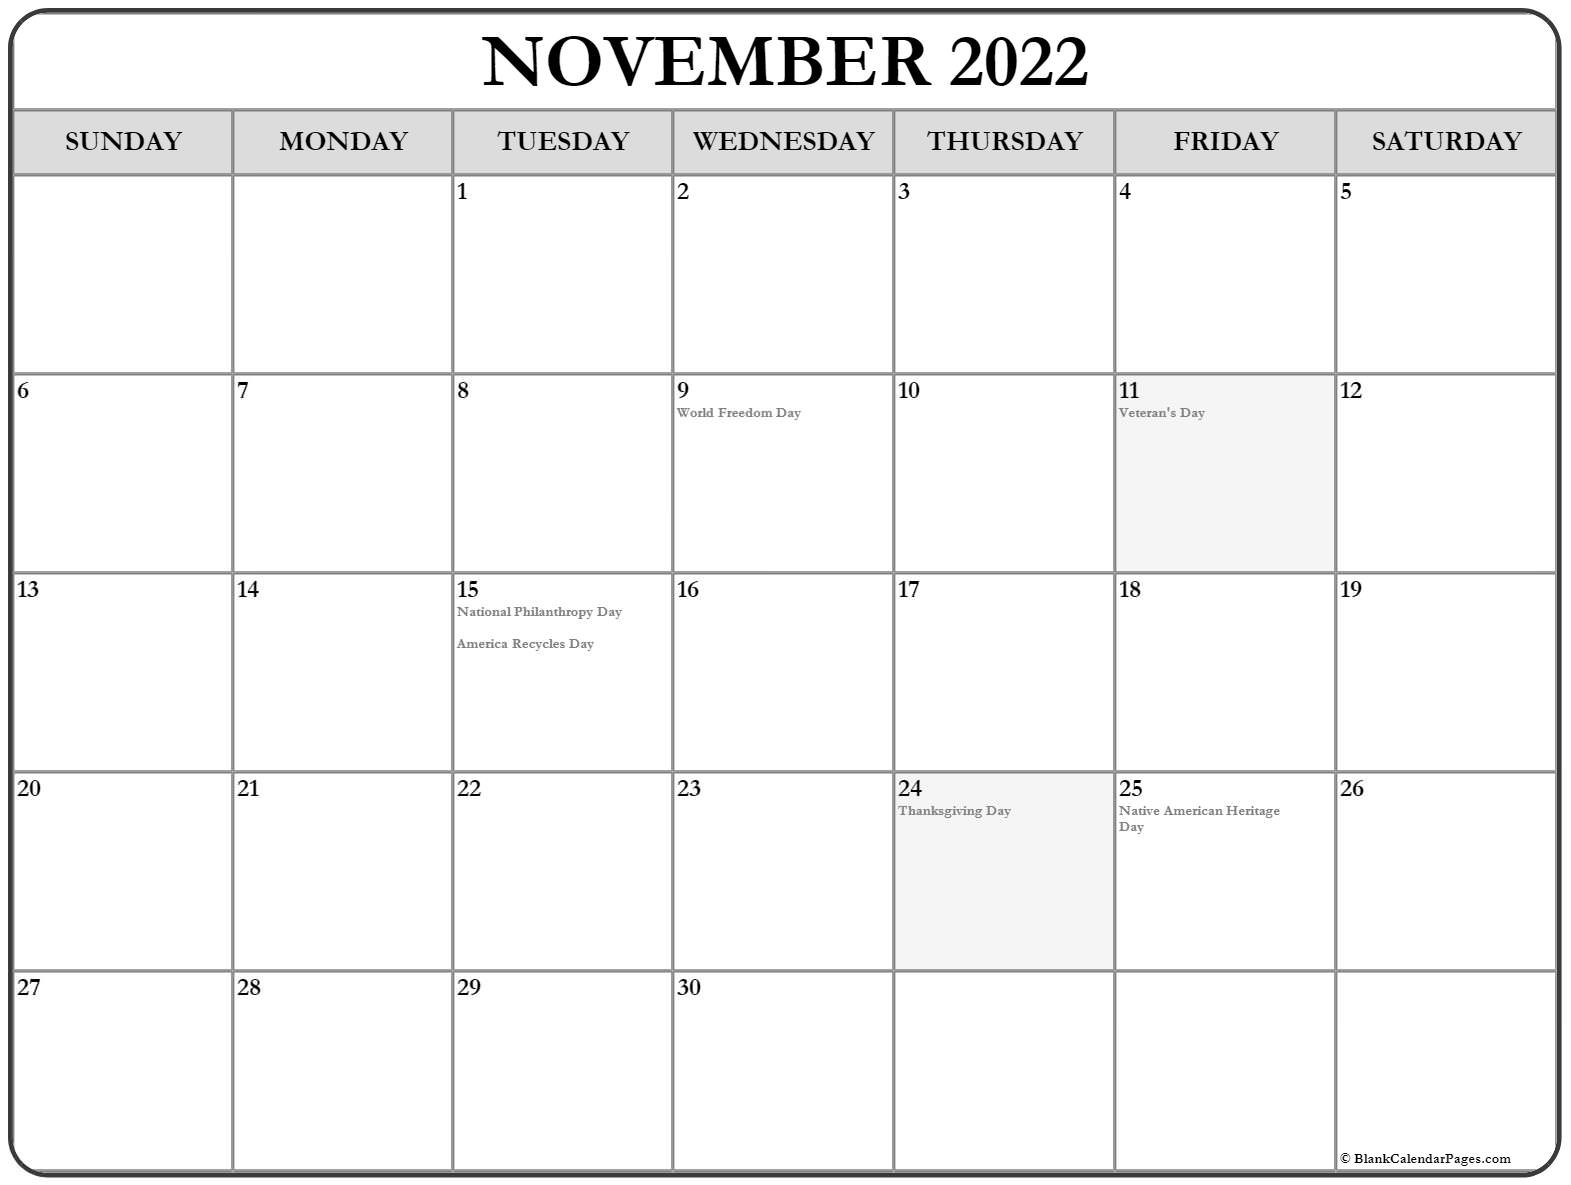 If you have any questions regarding these events, please contact us. November 2022 calendar with holidays